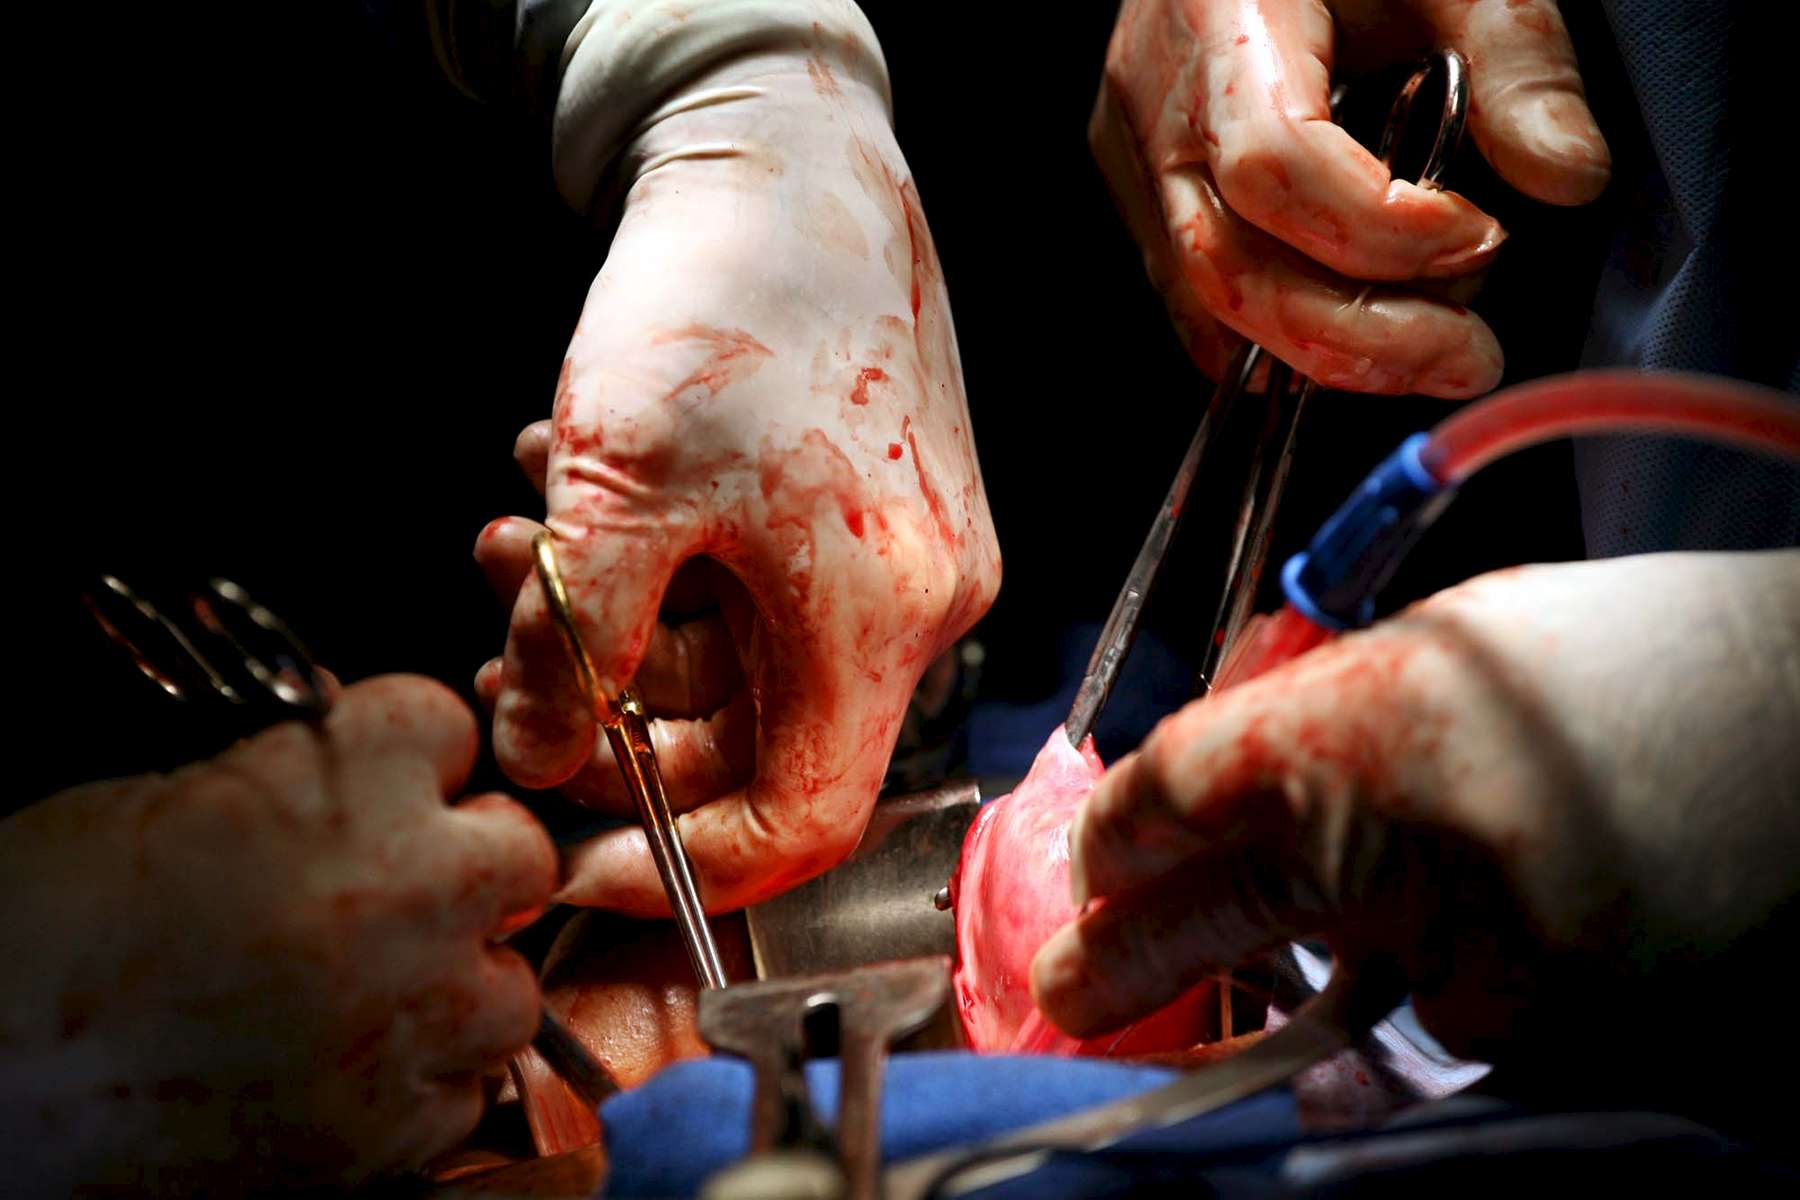 Surgeons remove a uterus during a hysterectomy.